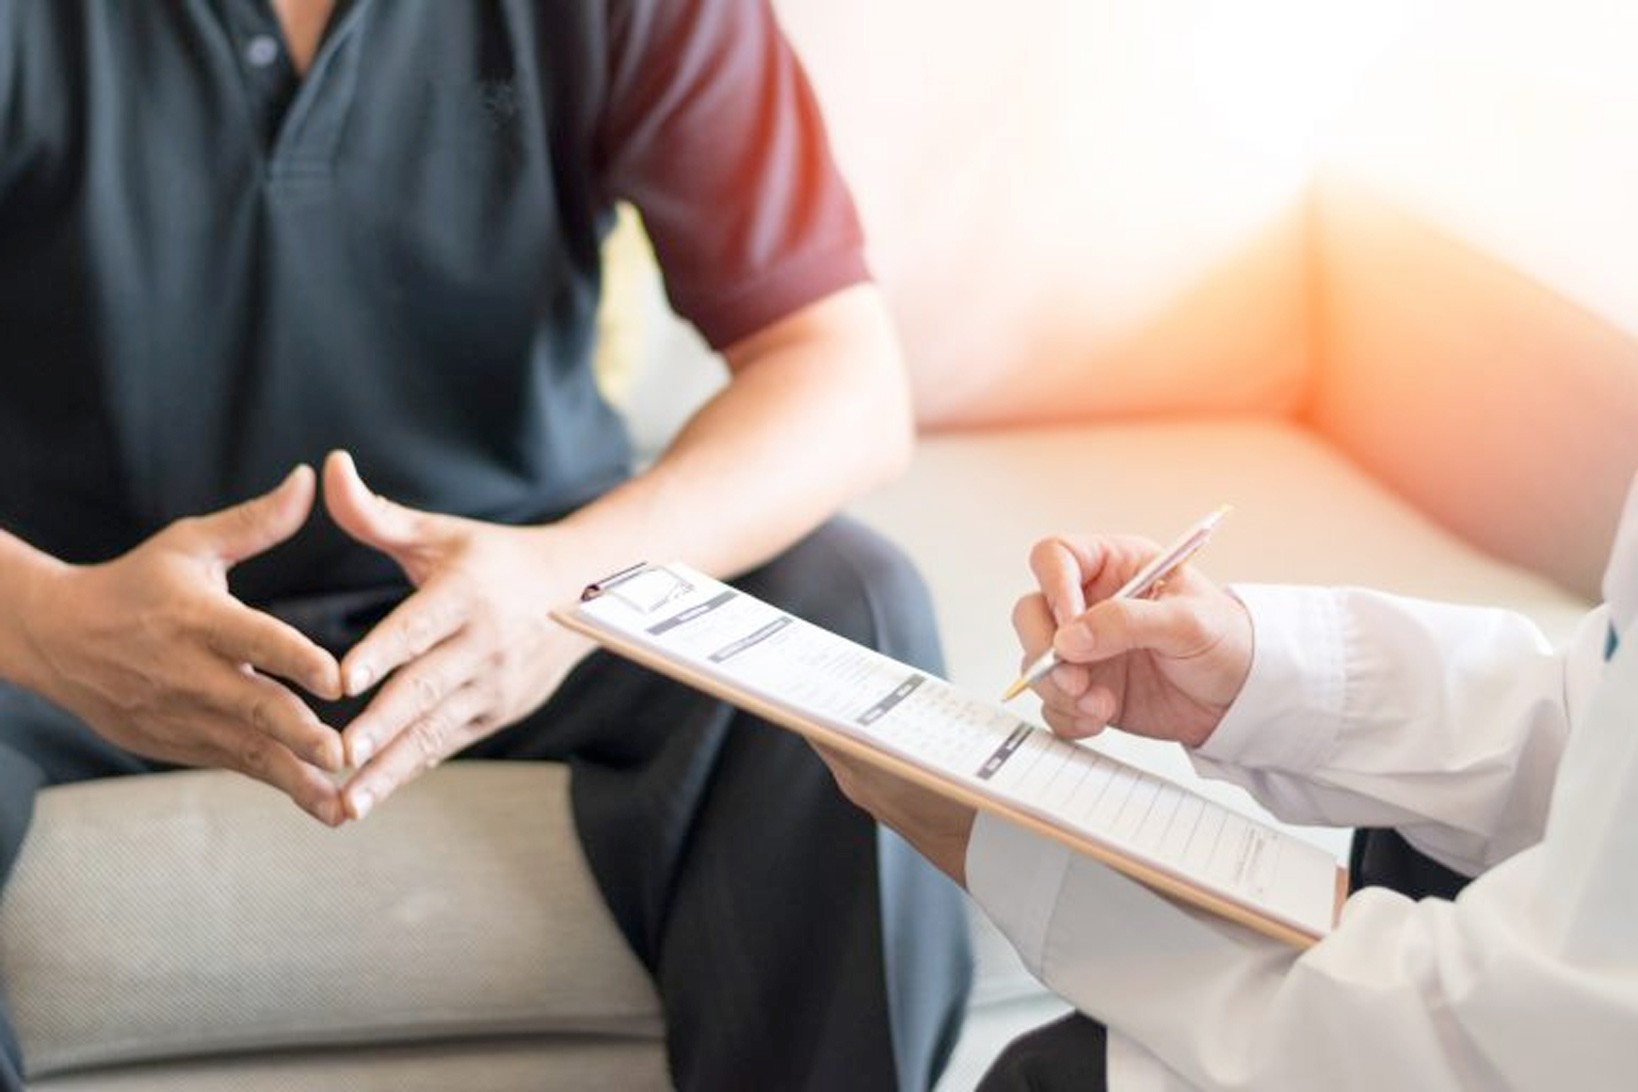 A doctor makes notes on a clipboard while talking to a patient, whose hands are steepled together.